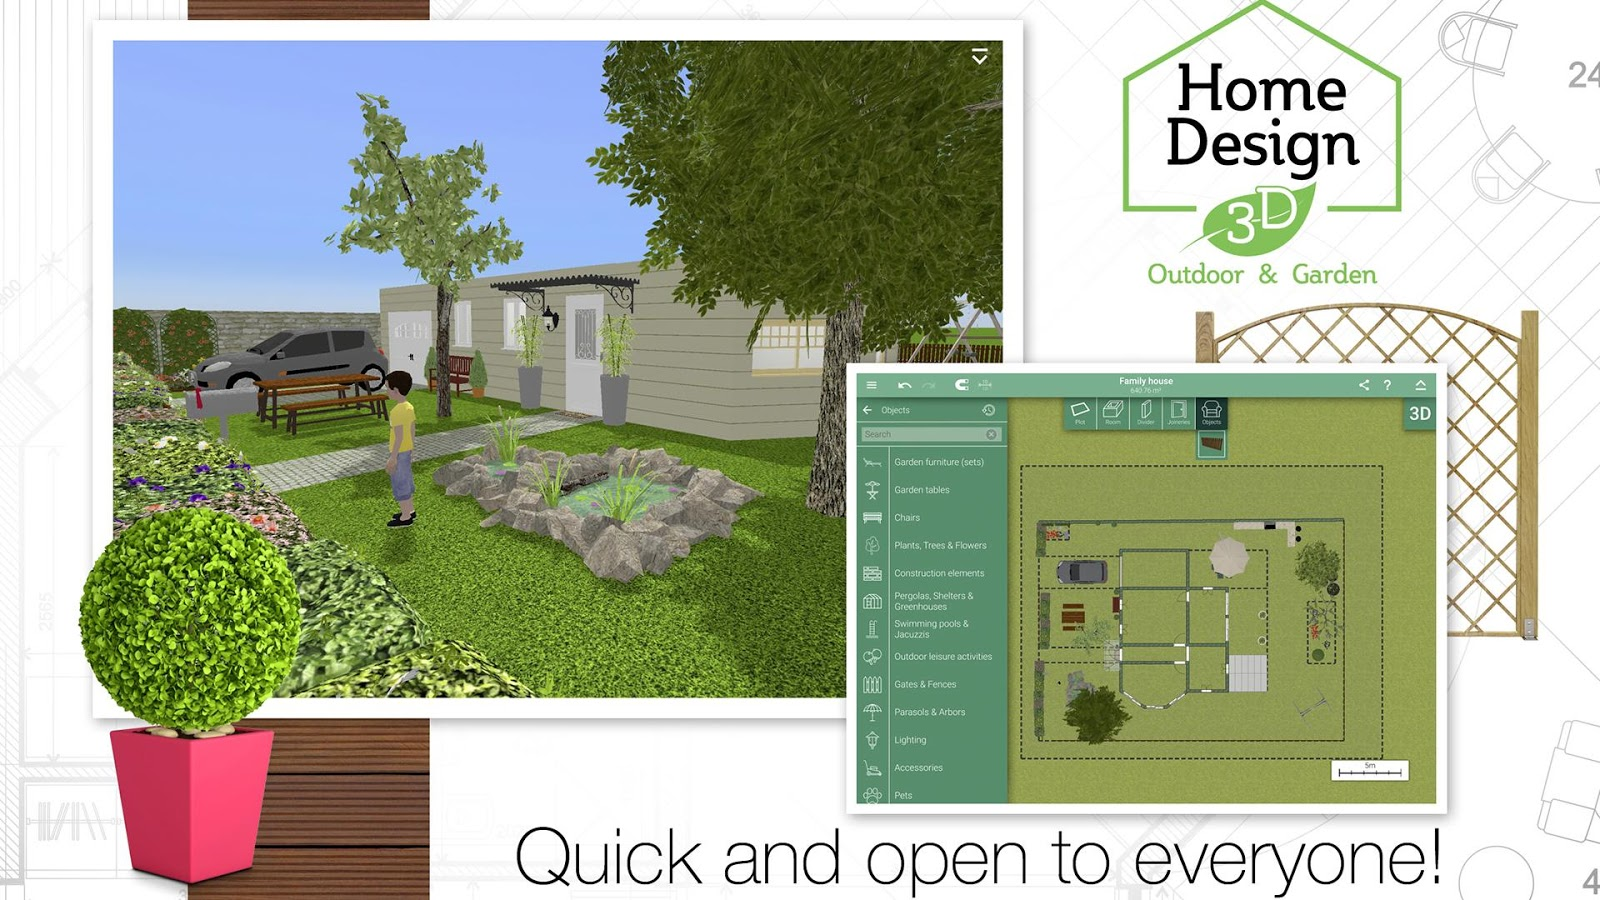 home design 3d outdoor garden 4 0 8 apk obb data file